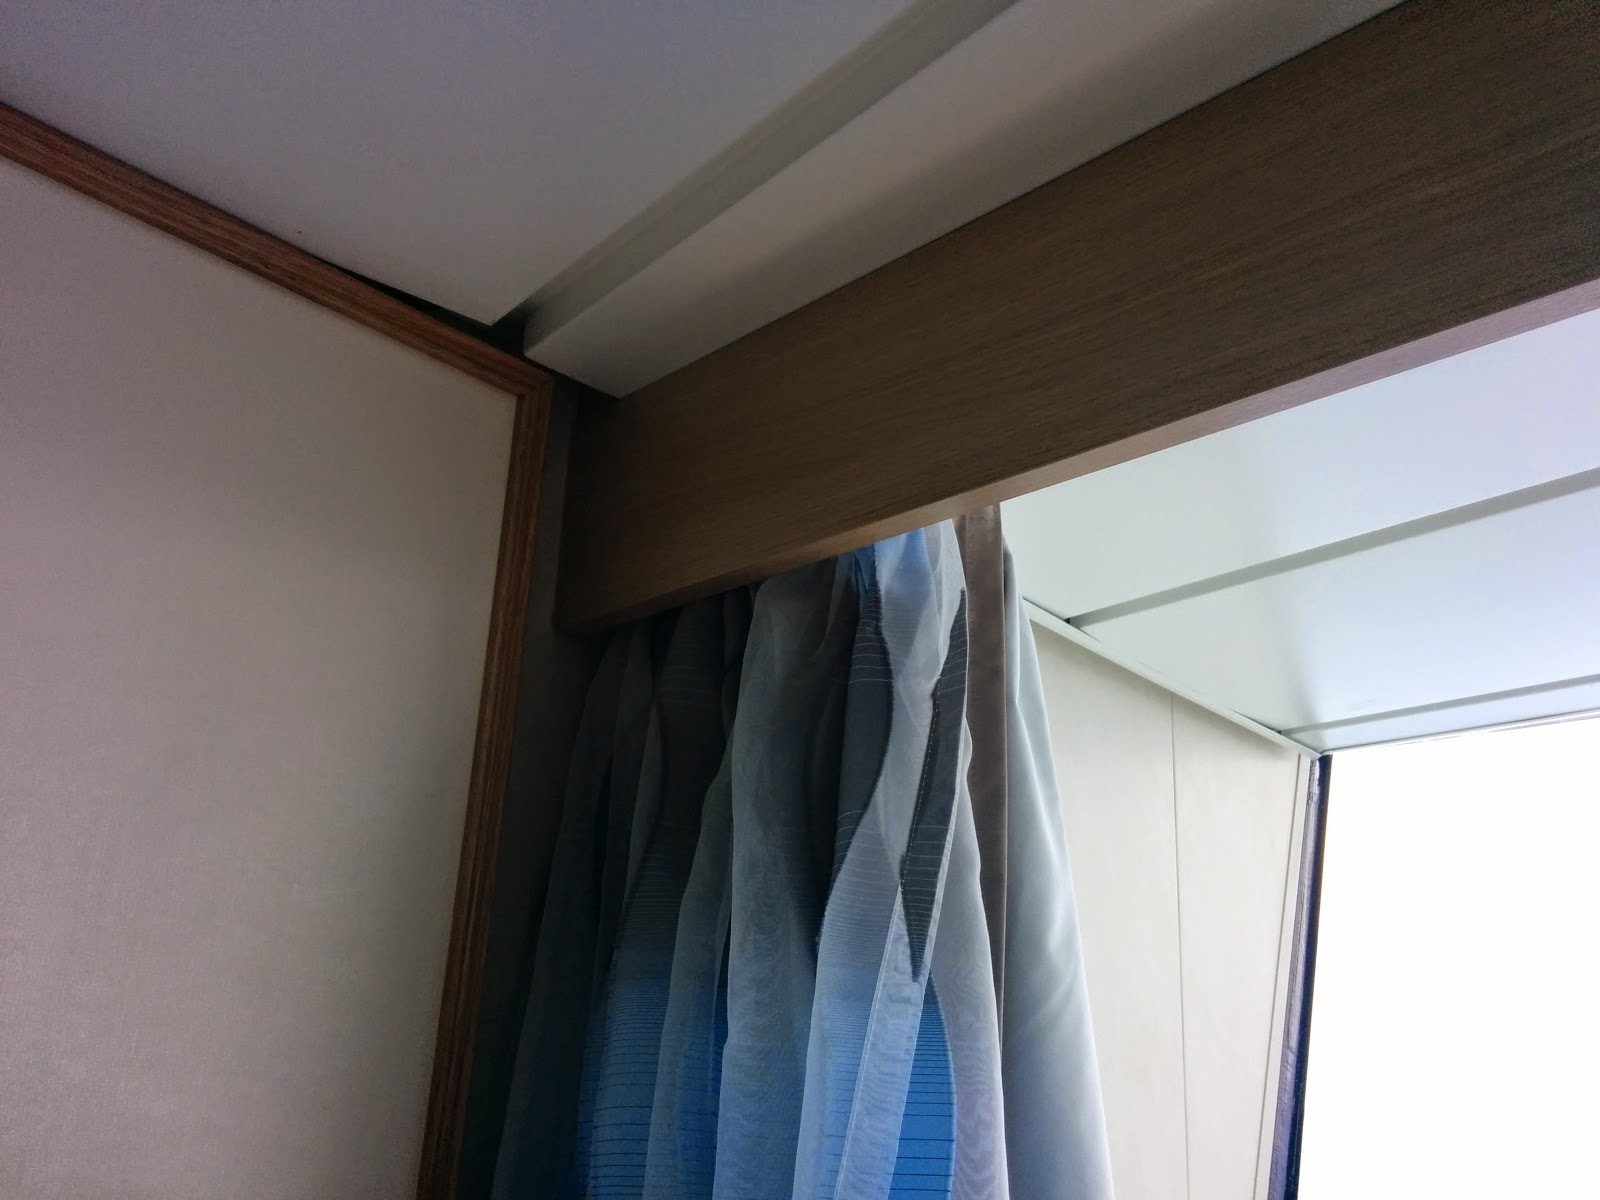 Ceiling track curtains